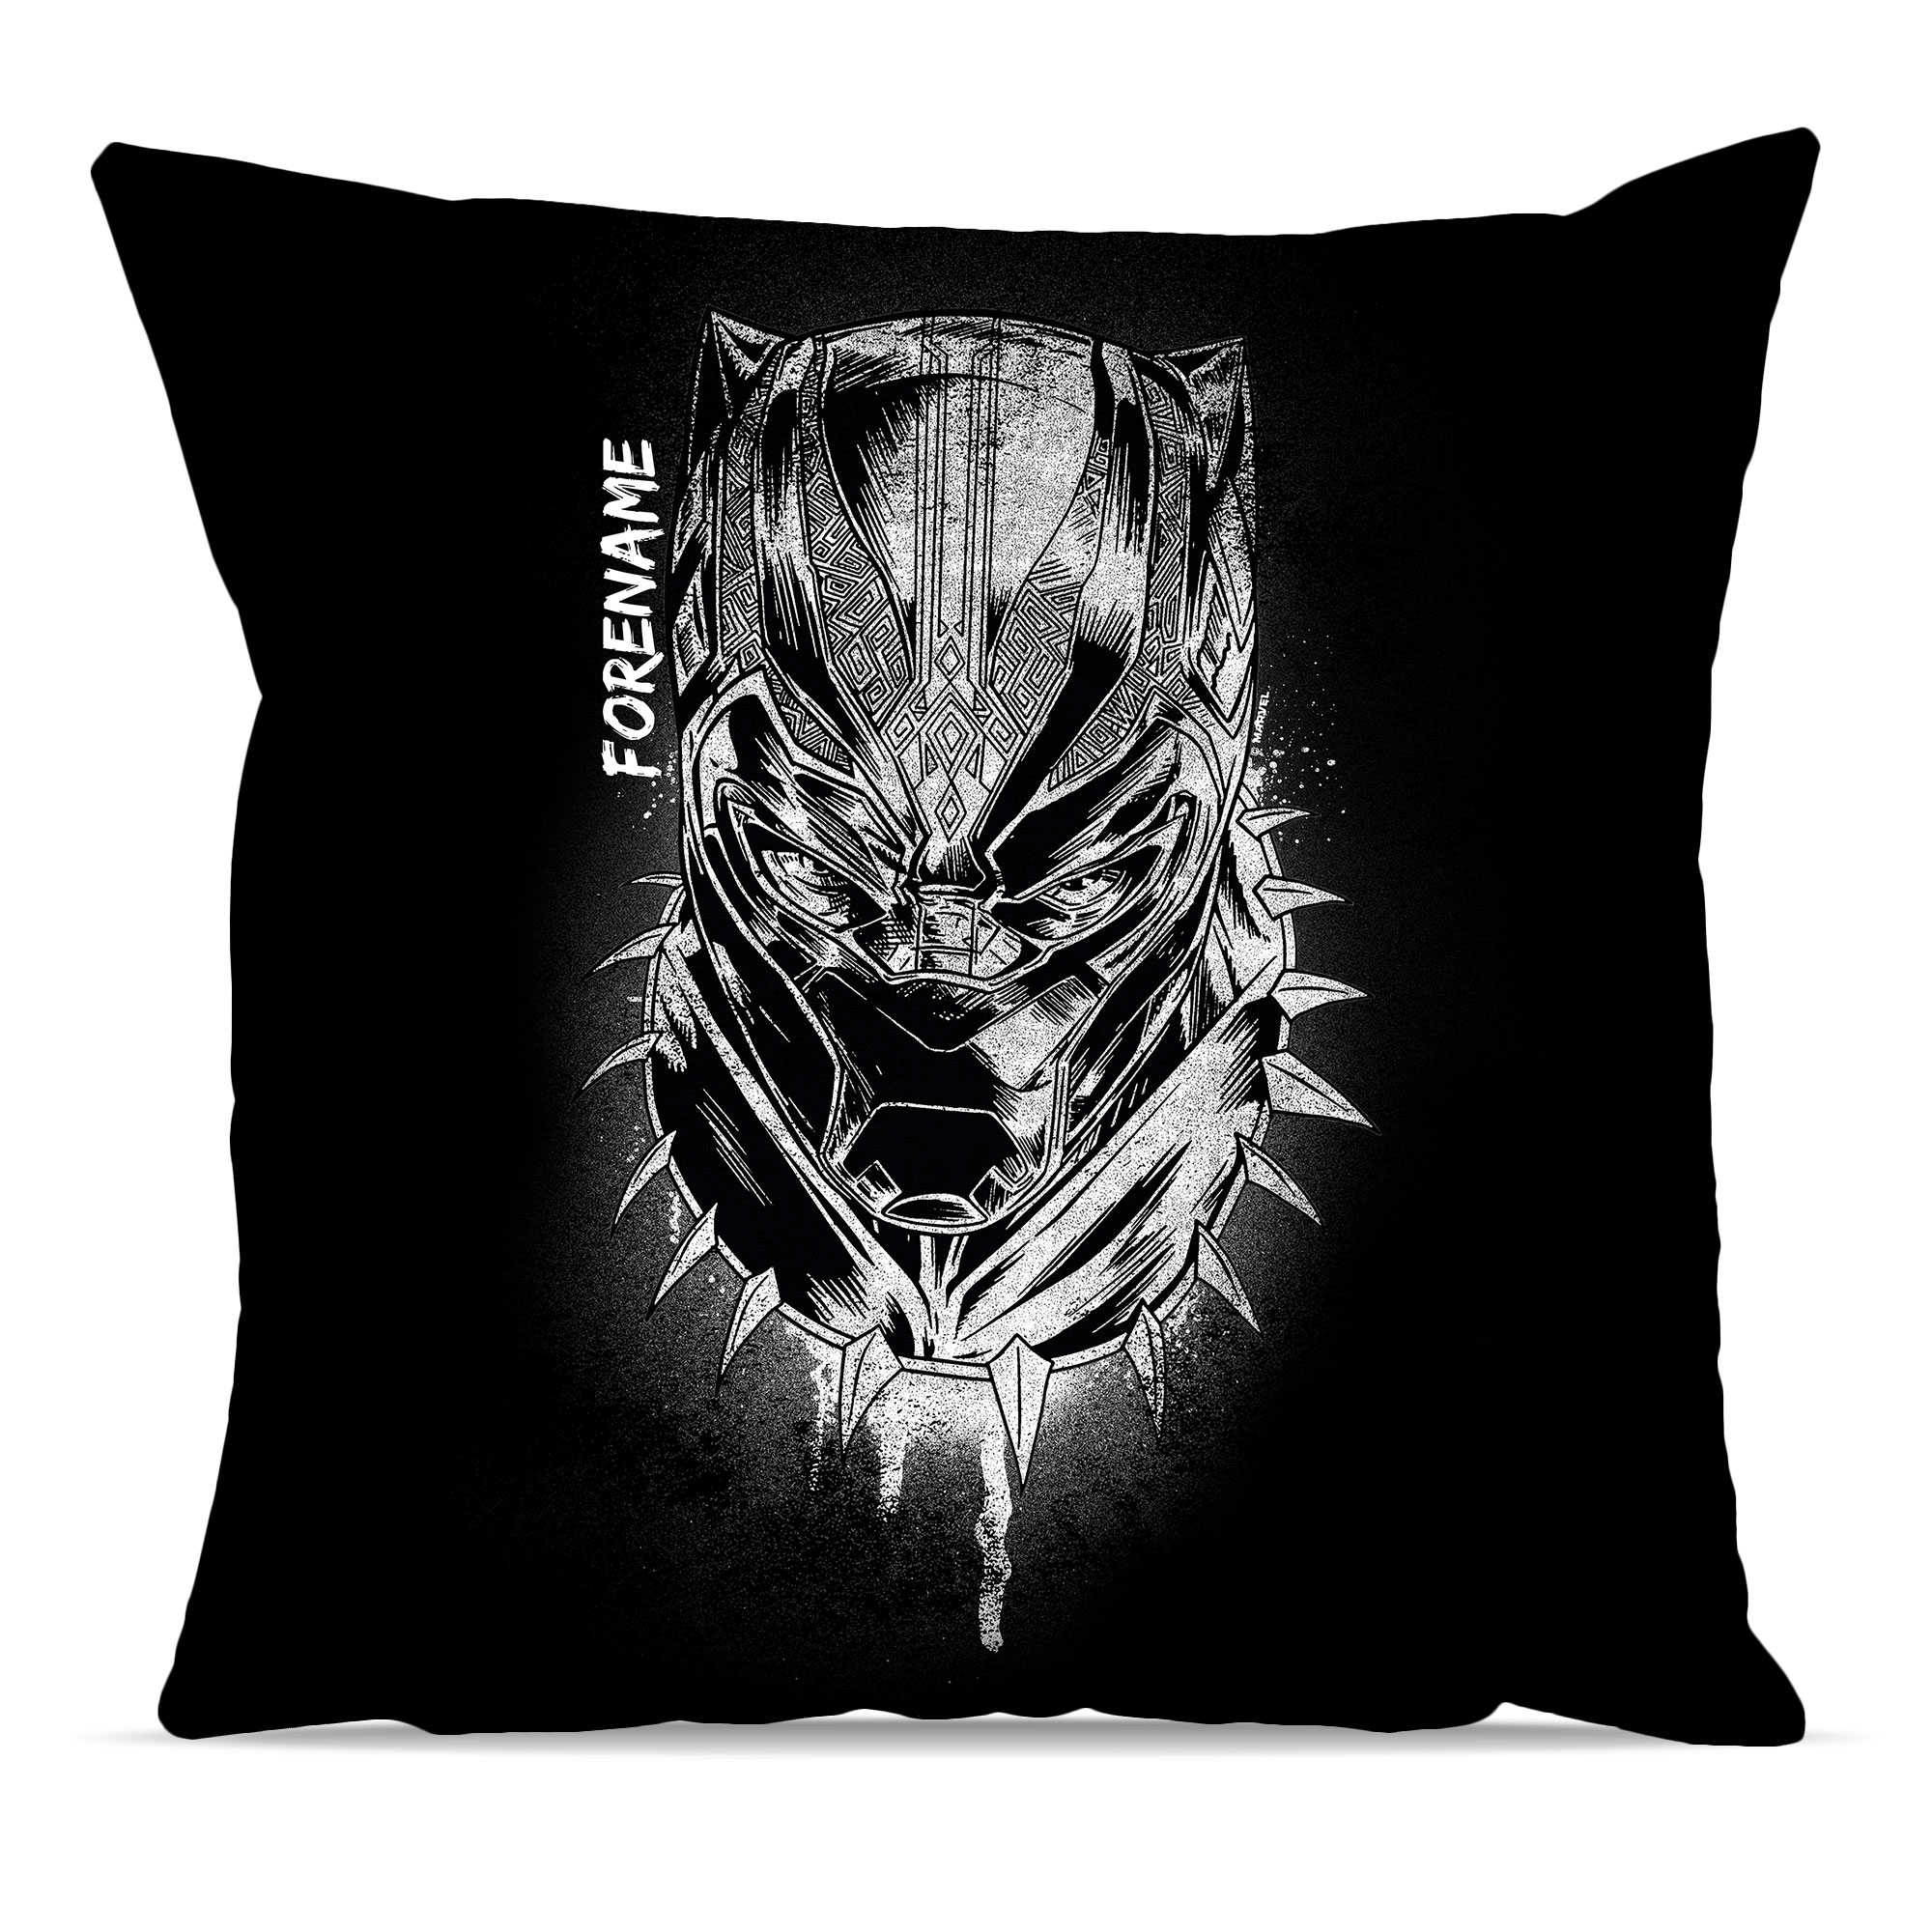 Marvel Black Panther Sketch Cushion